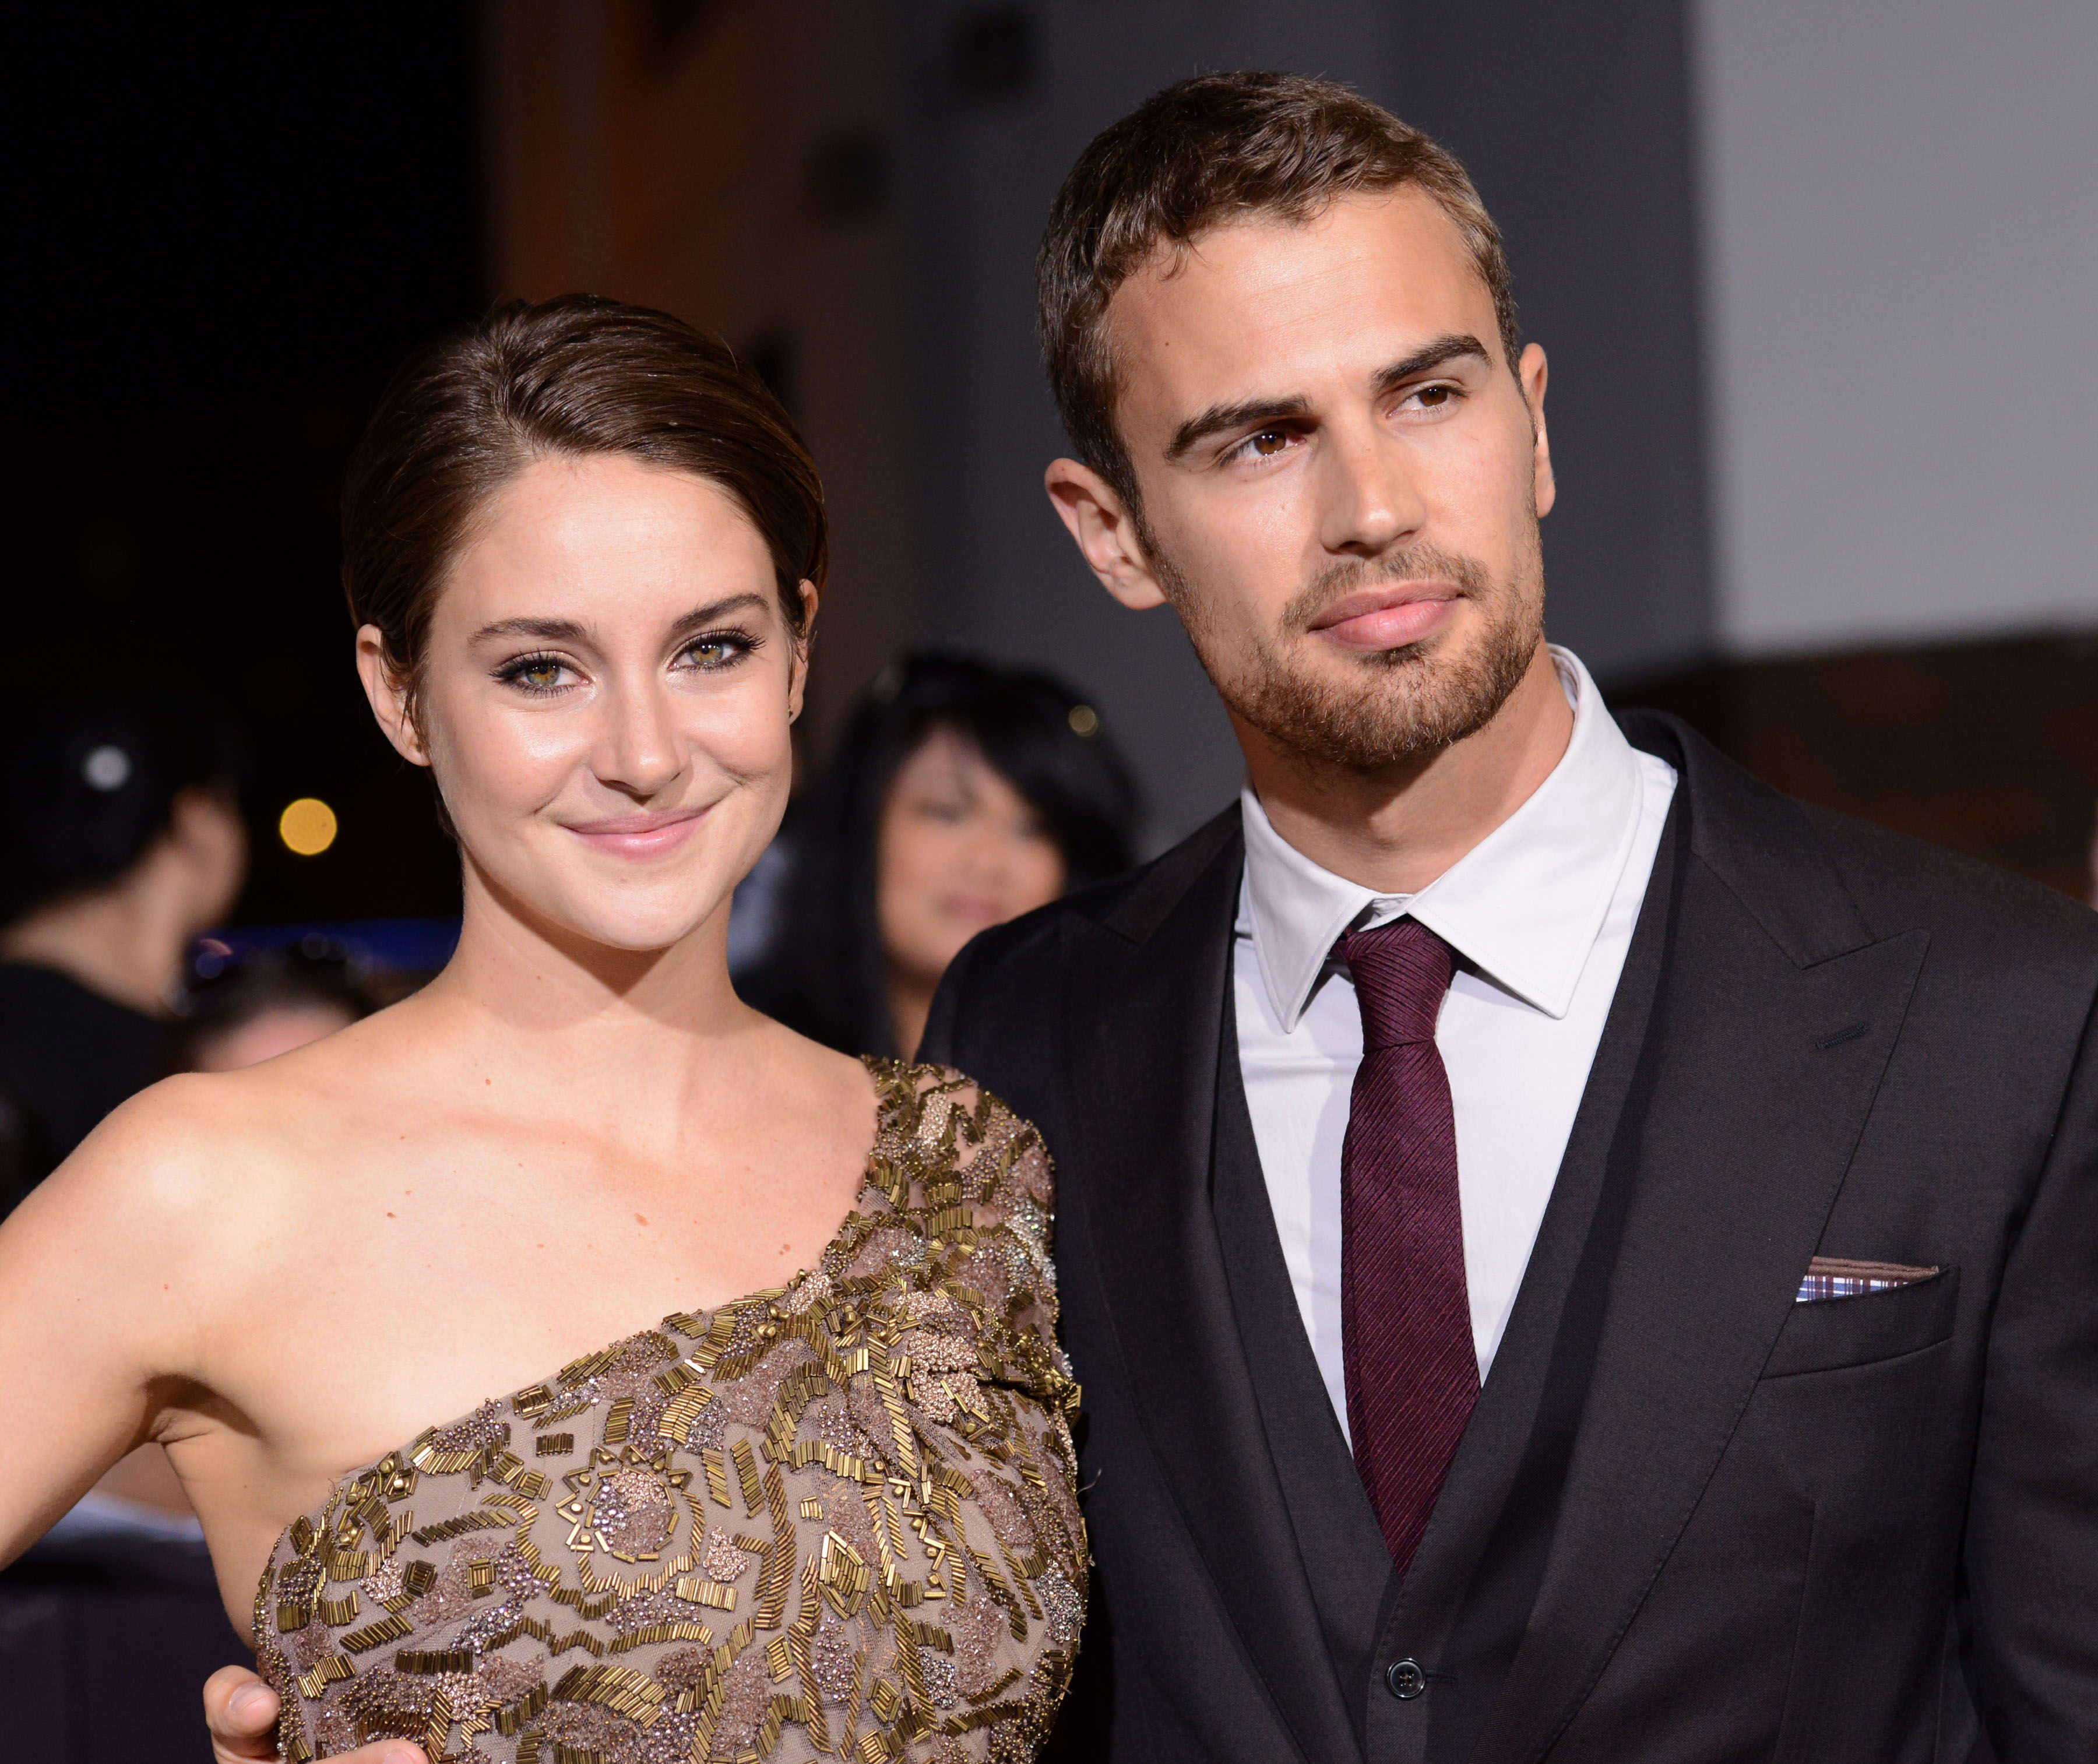 James engaged theo shailene woodley and Who is